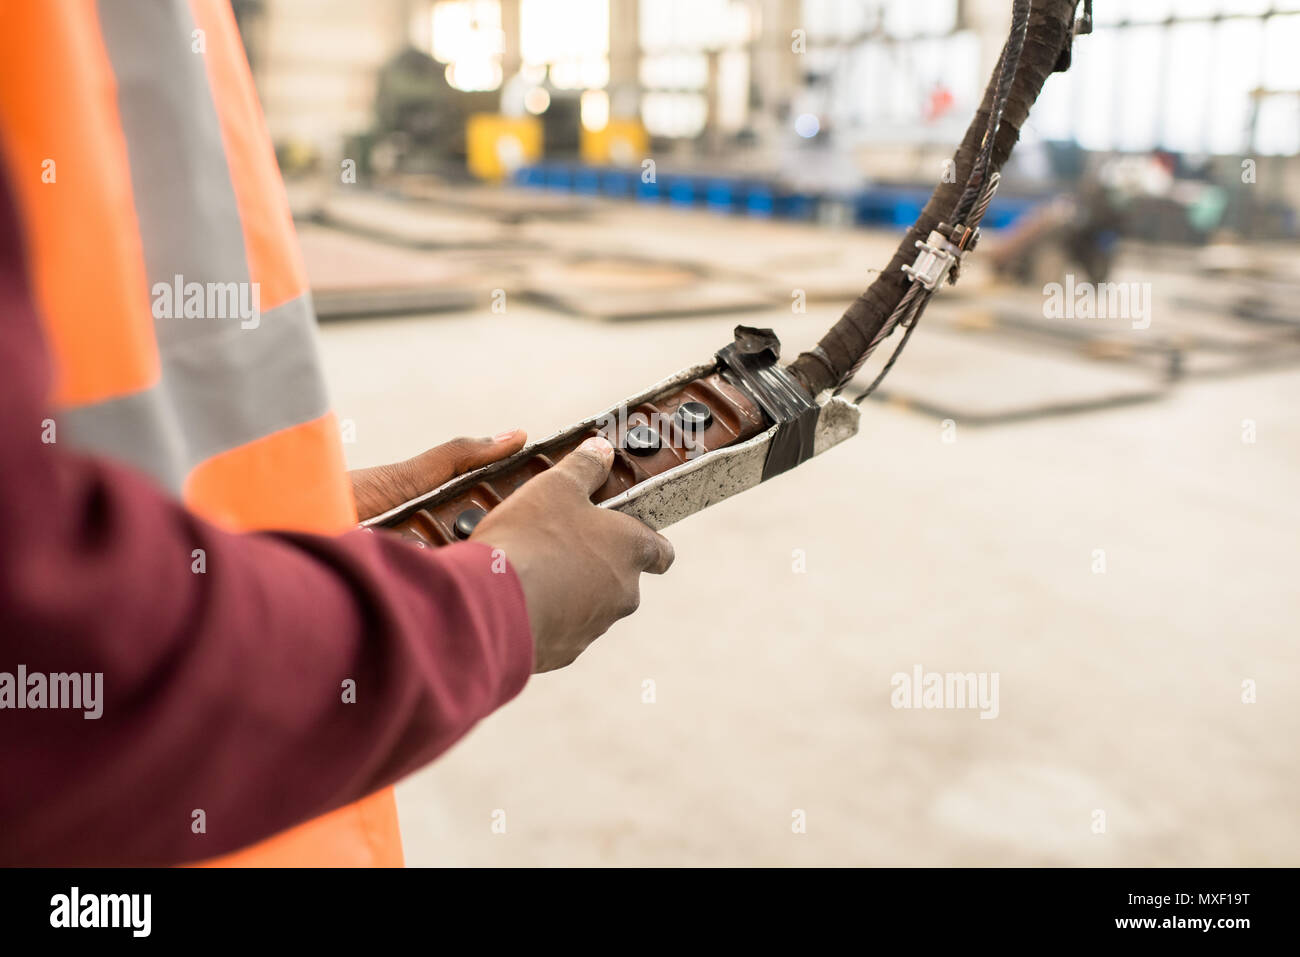 Machine Operator Using Control Panel - Stock Image